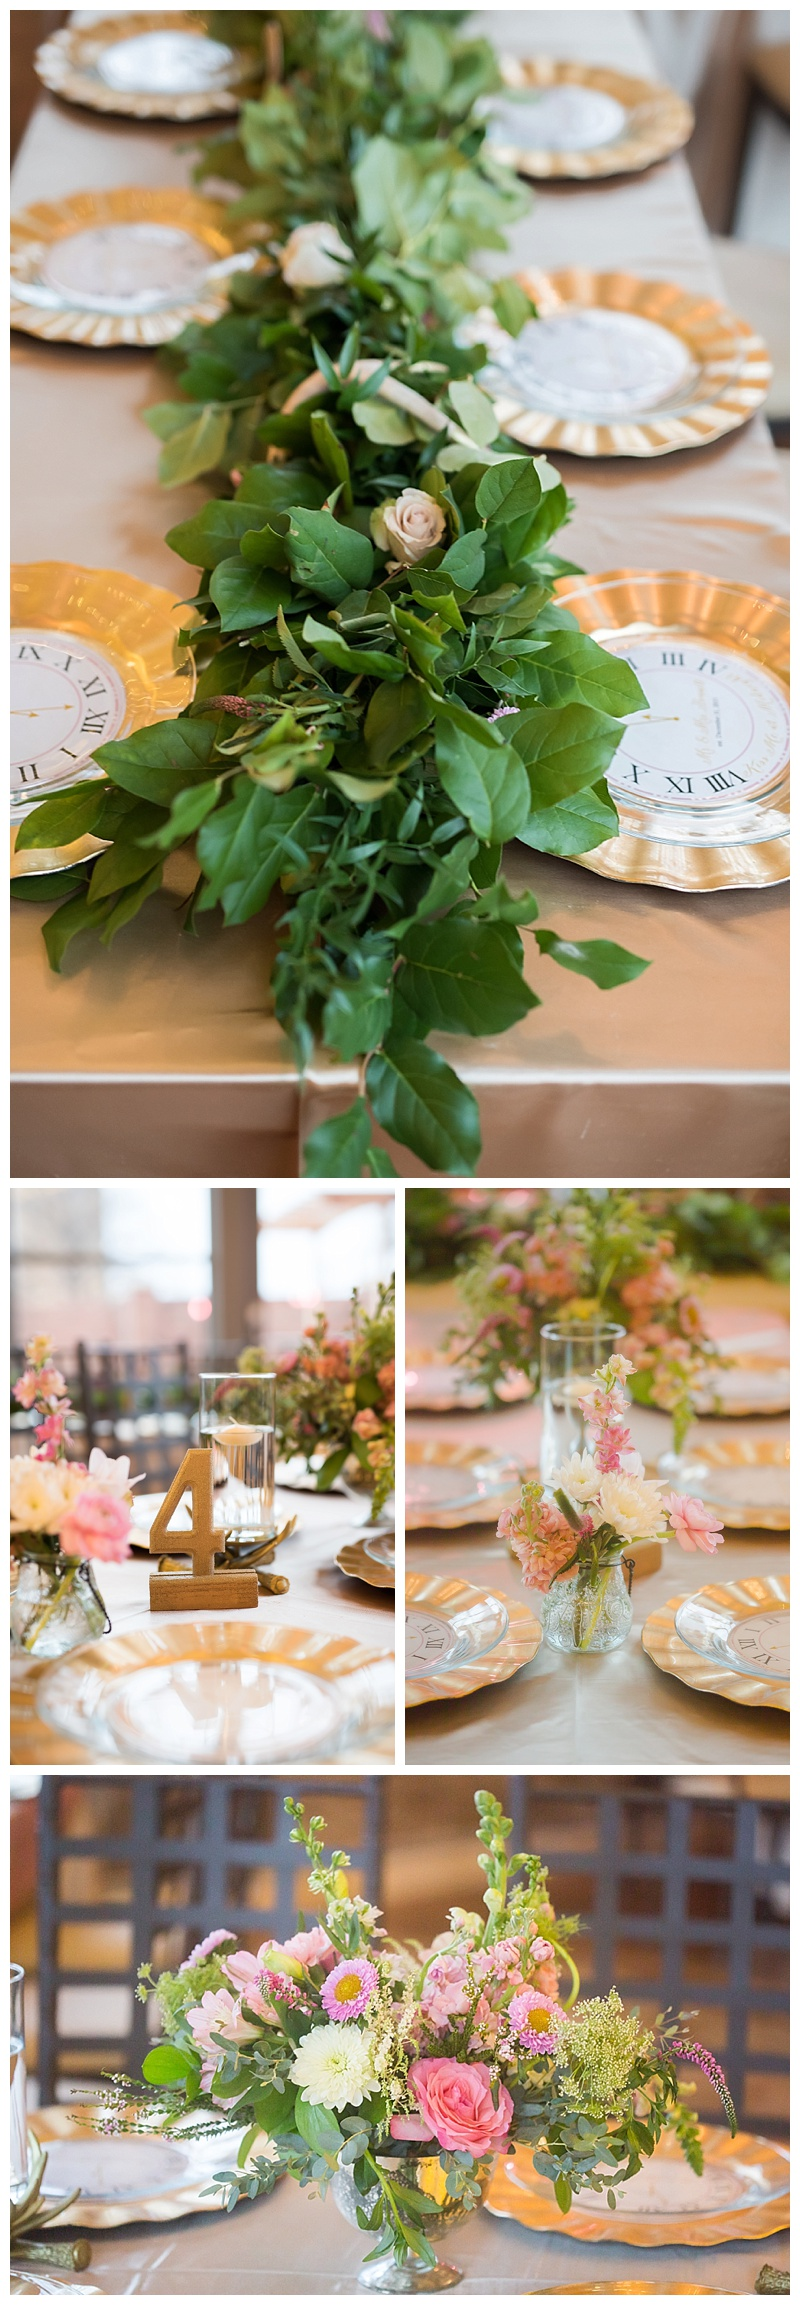 tablescapes-tulsa-wedding-flowers